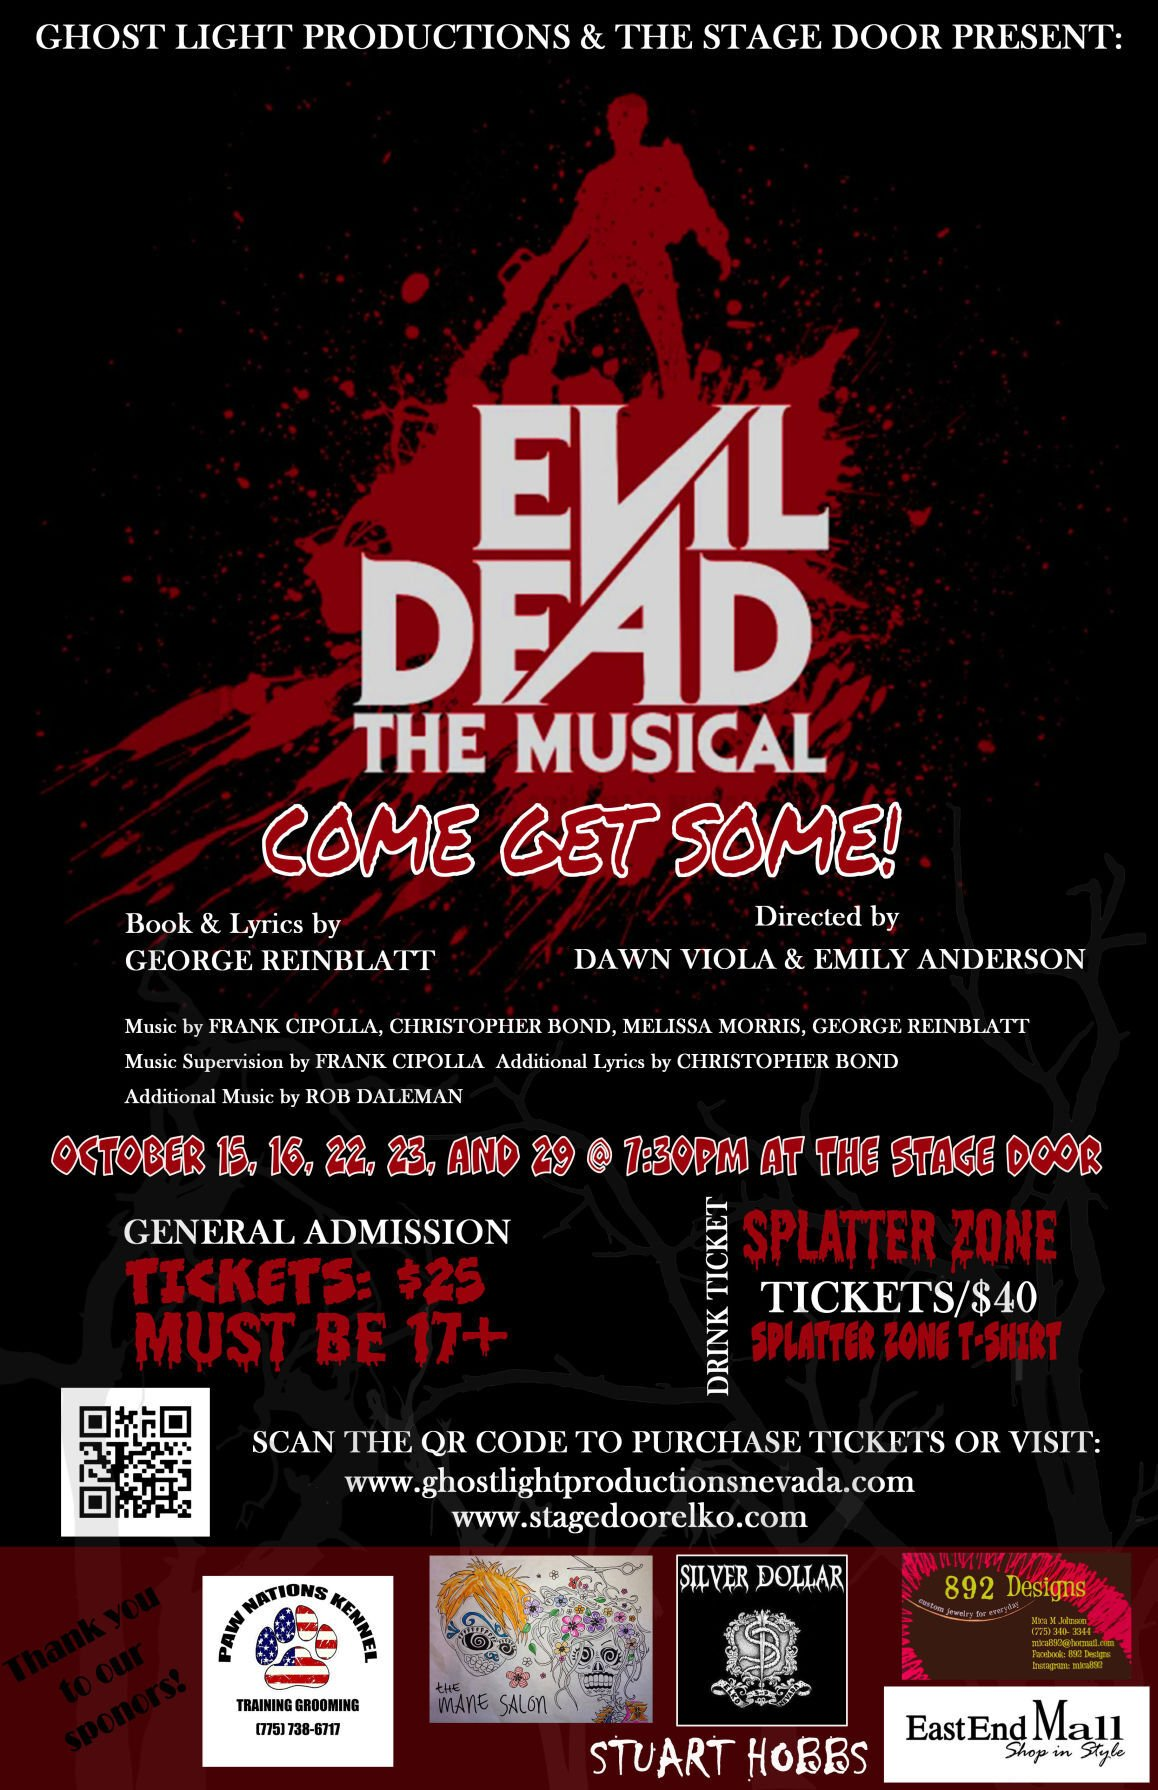 Enjoy gore and humor with theatrical performance